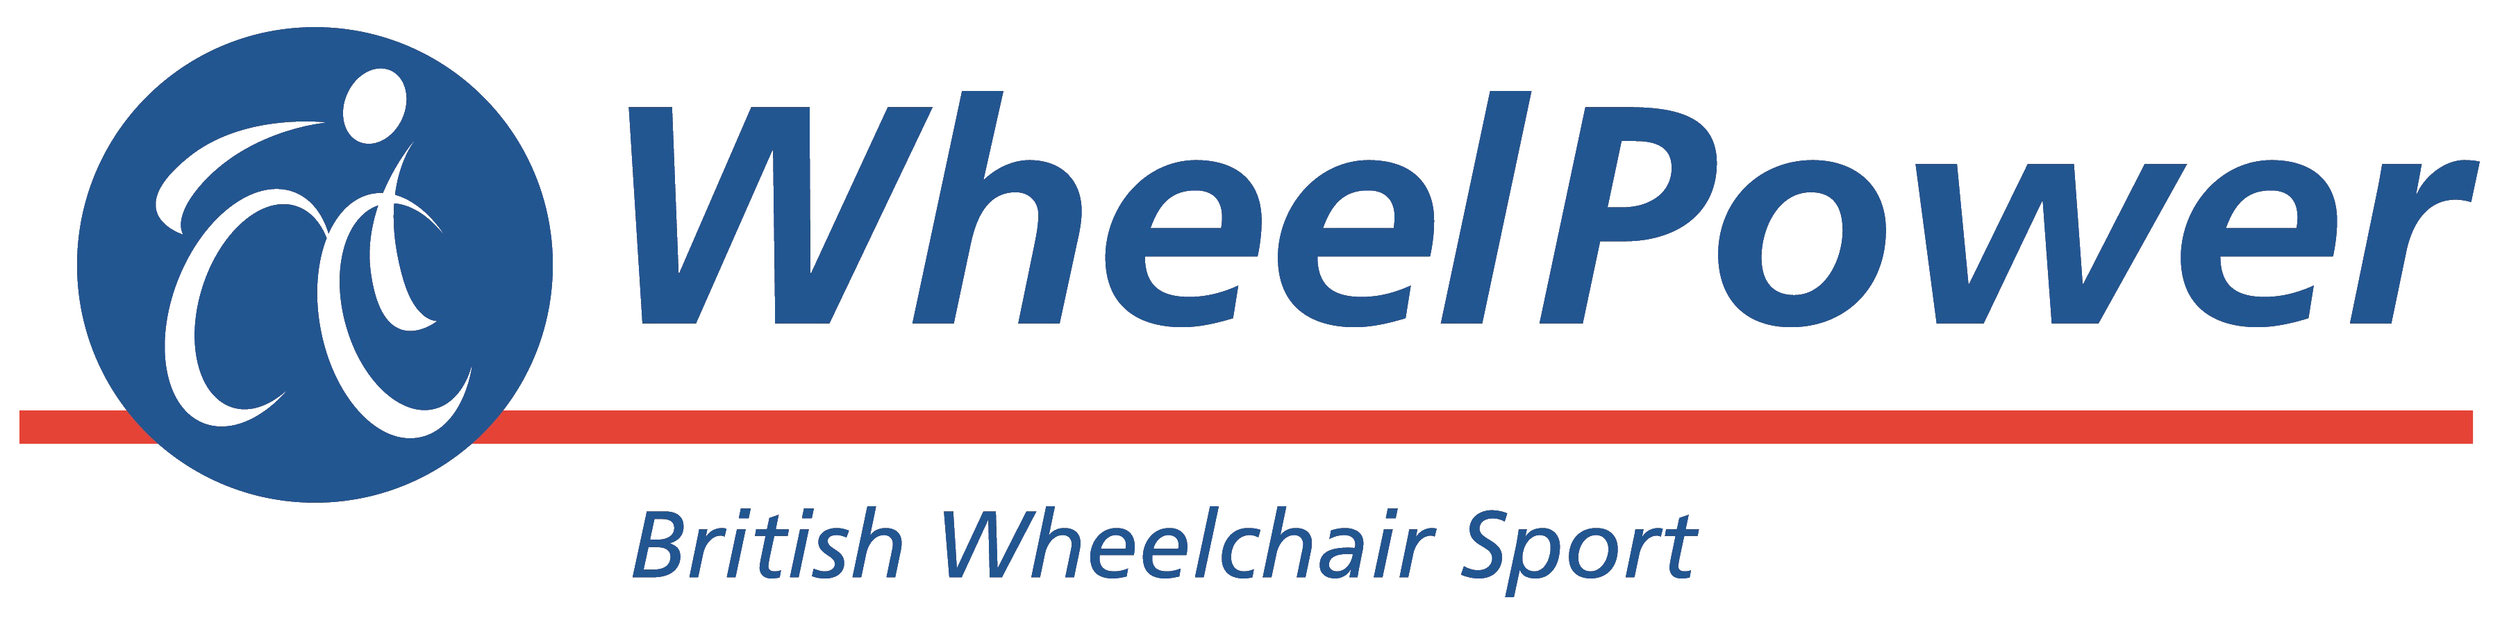 WheelPower High Res Logo.jpg